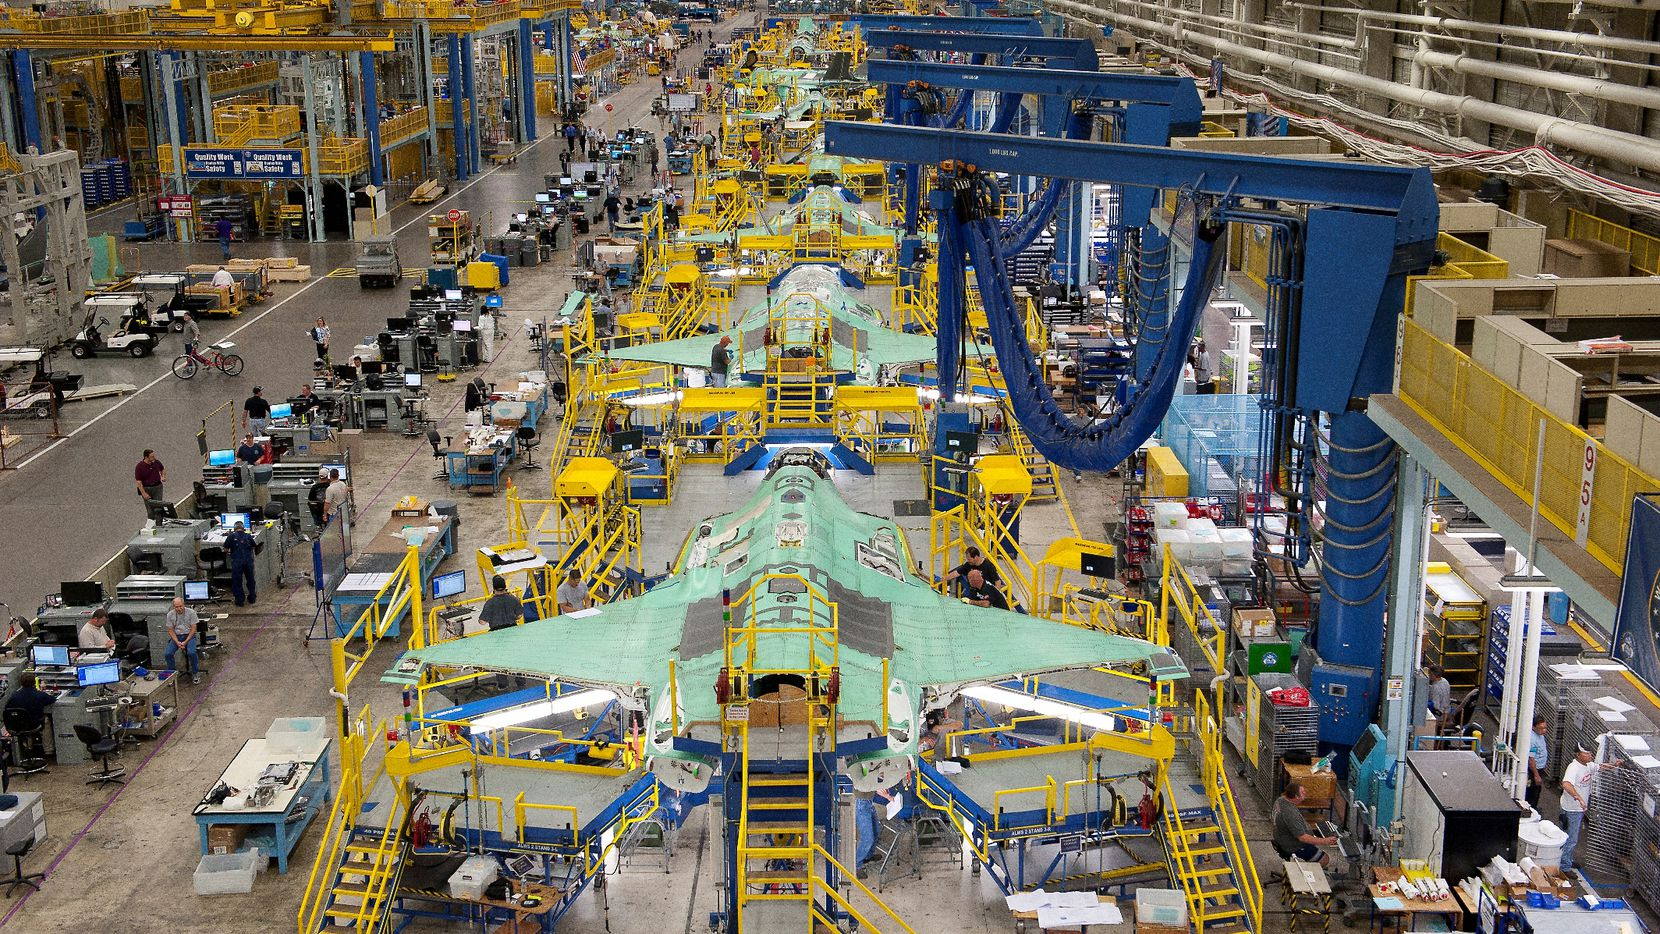 Lockheed Martin builds the F-35 Joint Strike Fighter in Fort Worth.